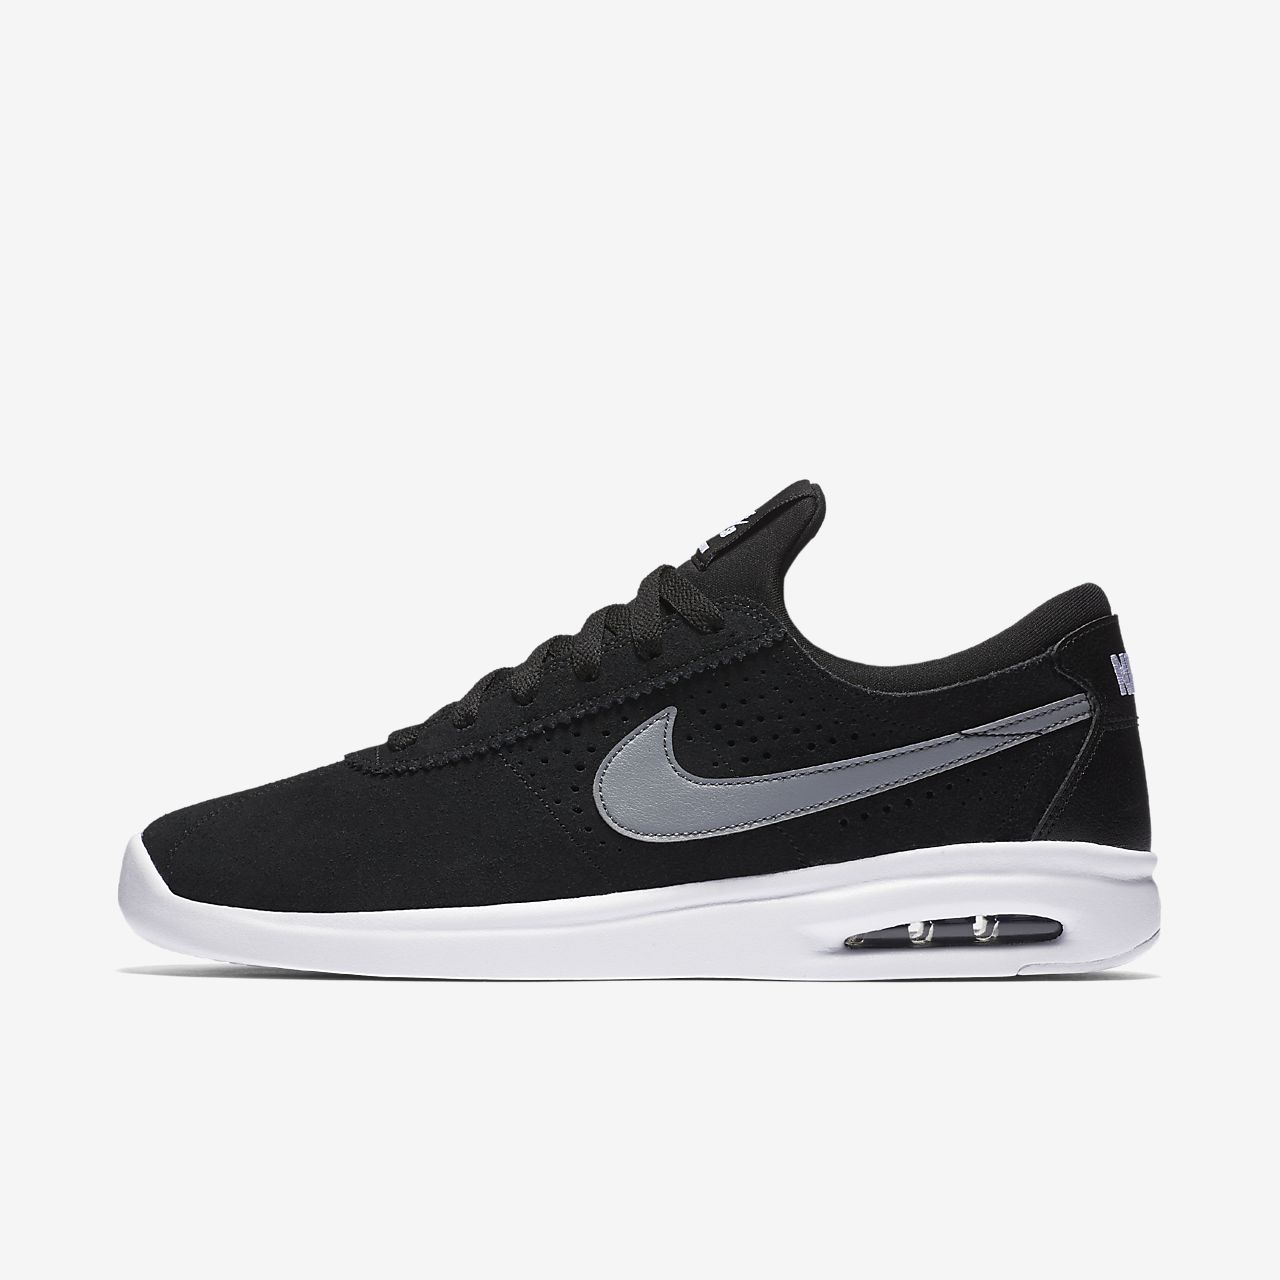 the latest 56257 3e446 ... Nike SB Air Max Bruin Vapor Mens Skate Shoe